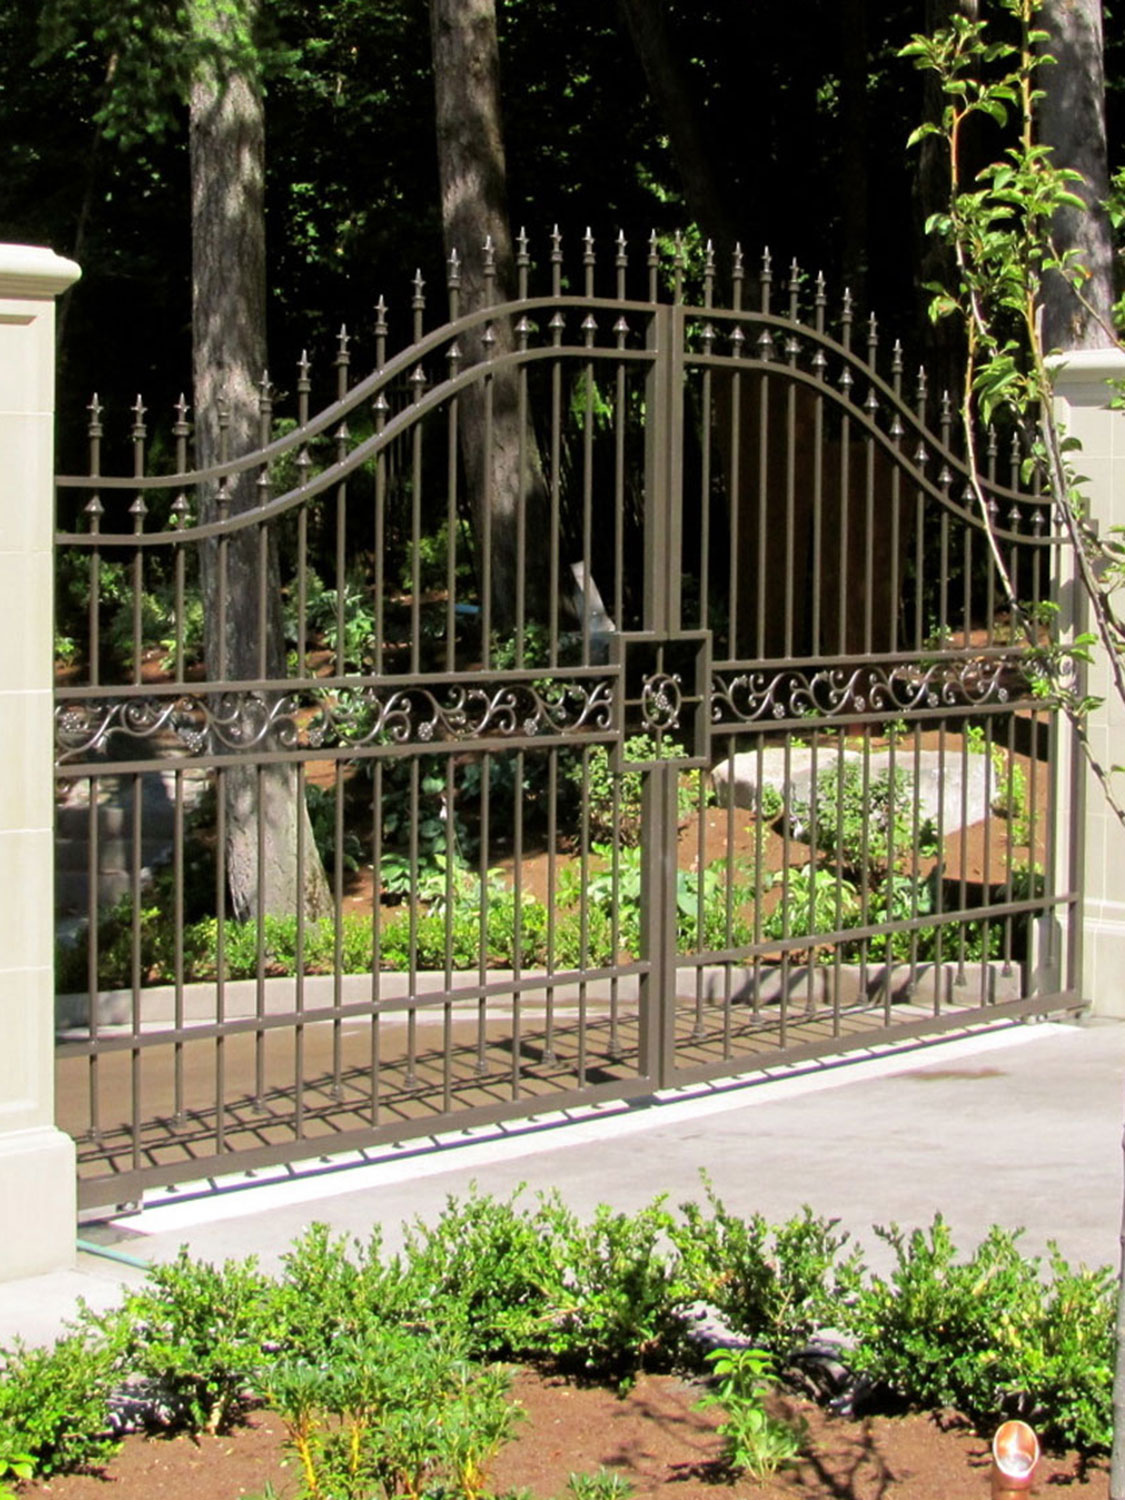 Automatic Gate and Fence - Featured Image - Seattle, WA